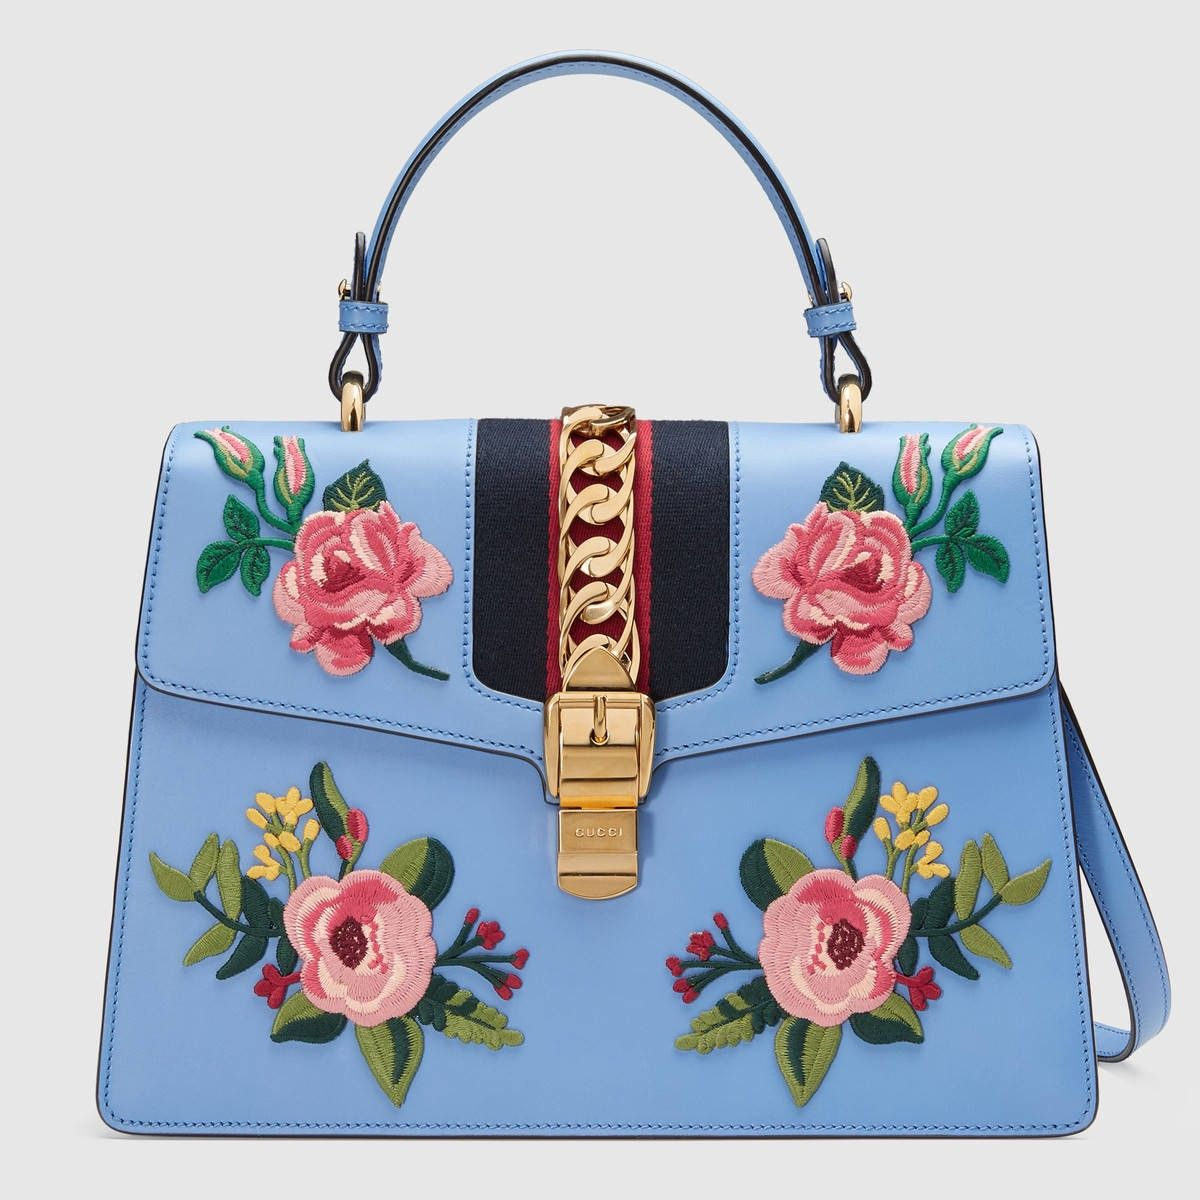 f360c68cbb0 GUCCI Sylvie Embroidered Leather Top Handle Bag - Light Blue Leather.  gucci   bags  shoulder bags  hand bags  nylon  suede  lining